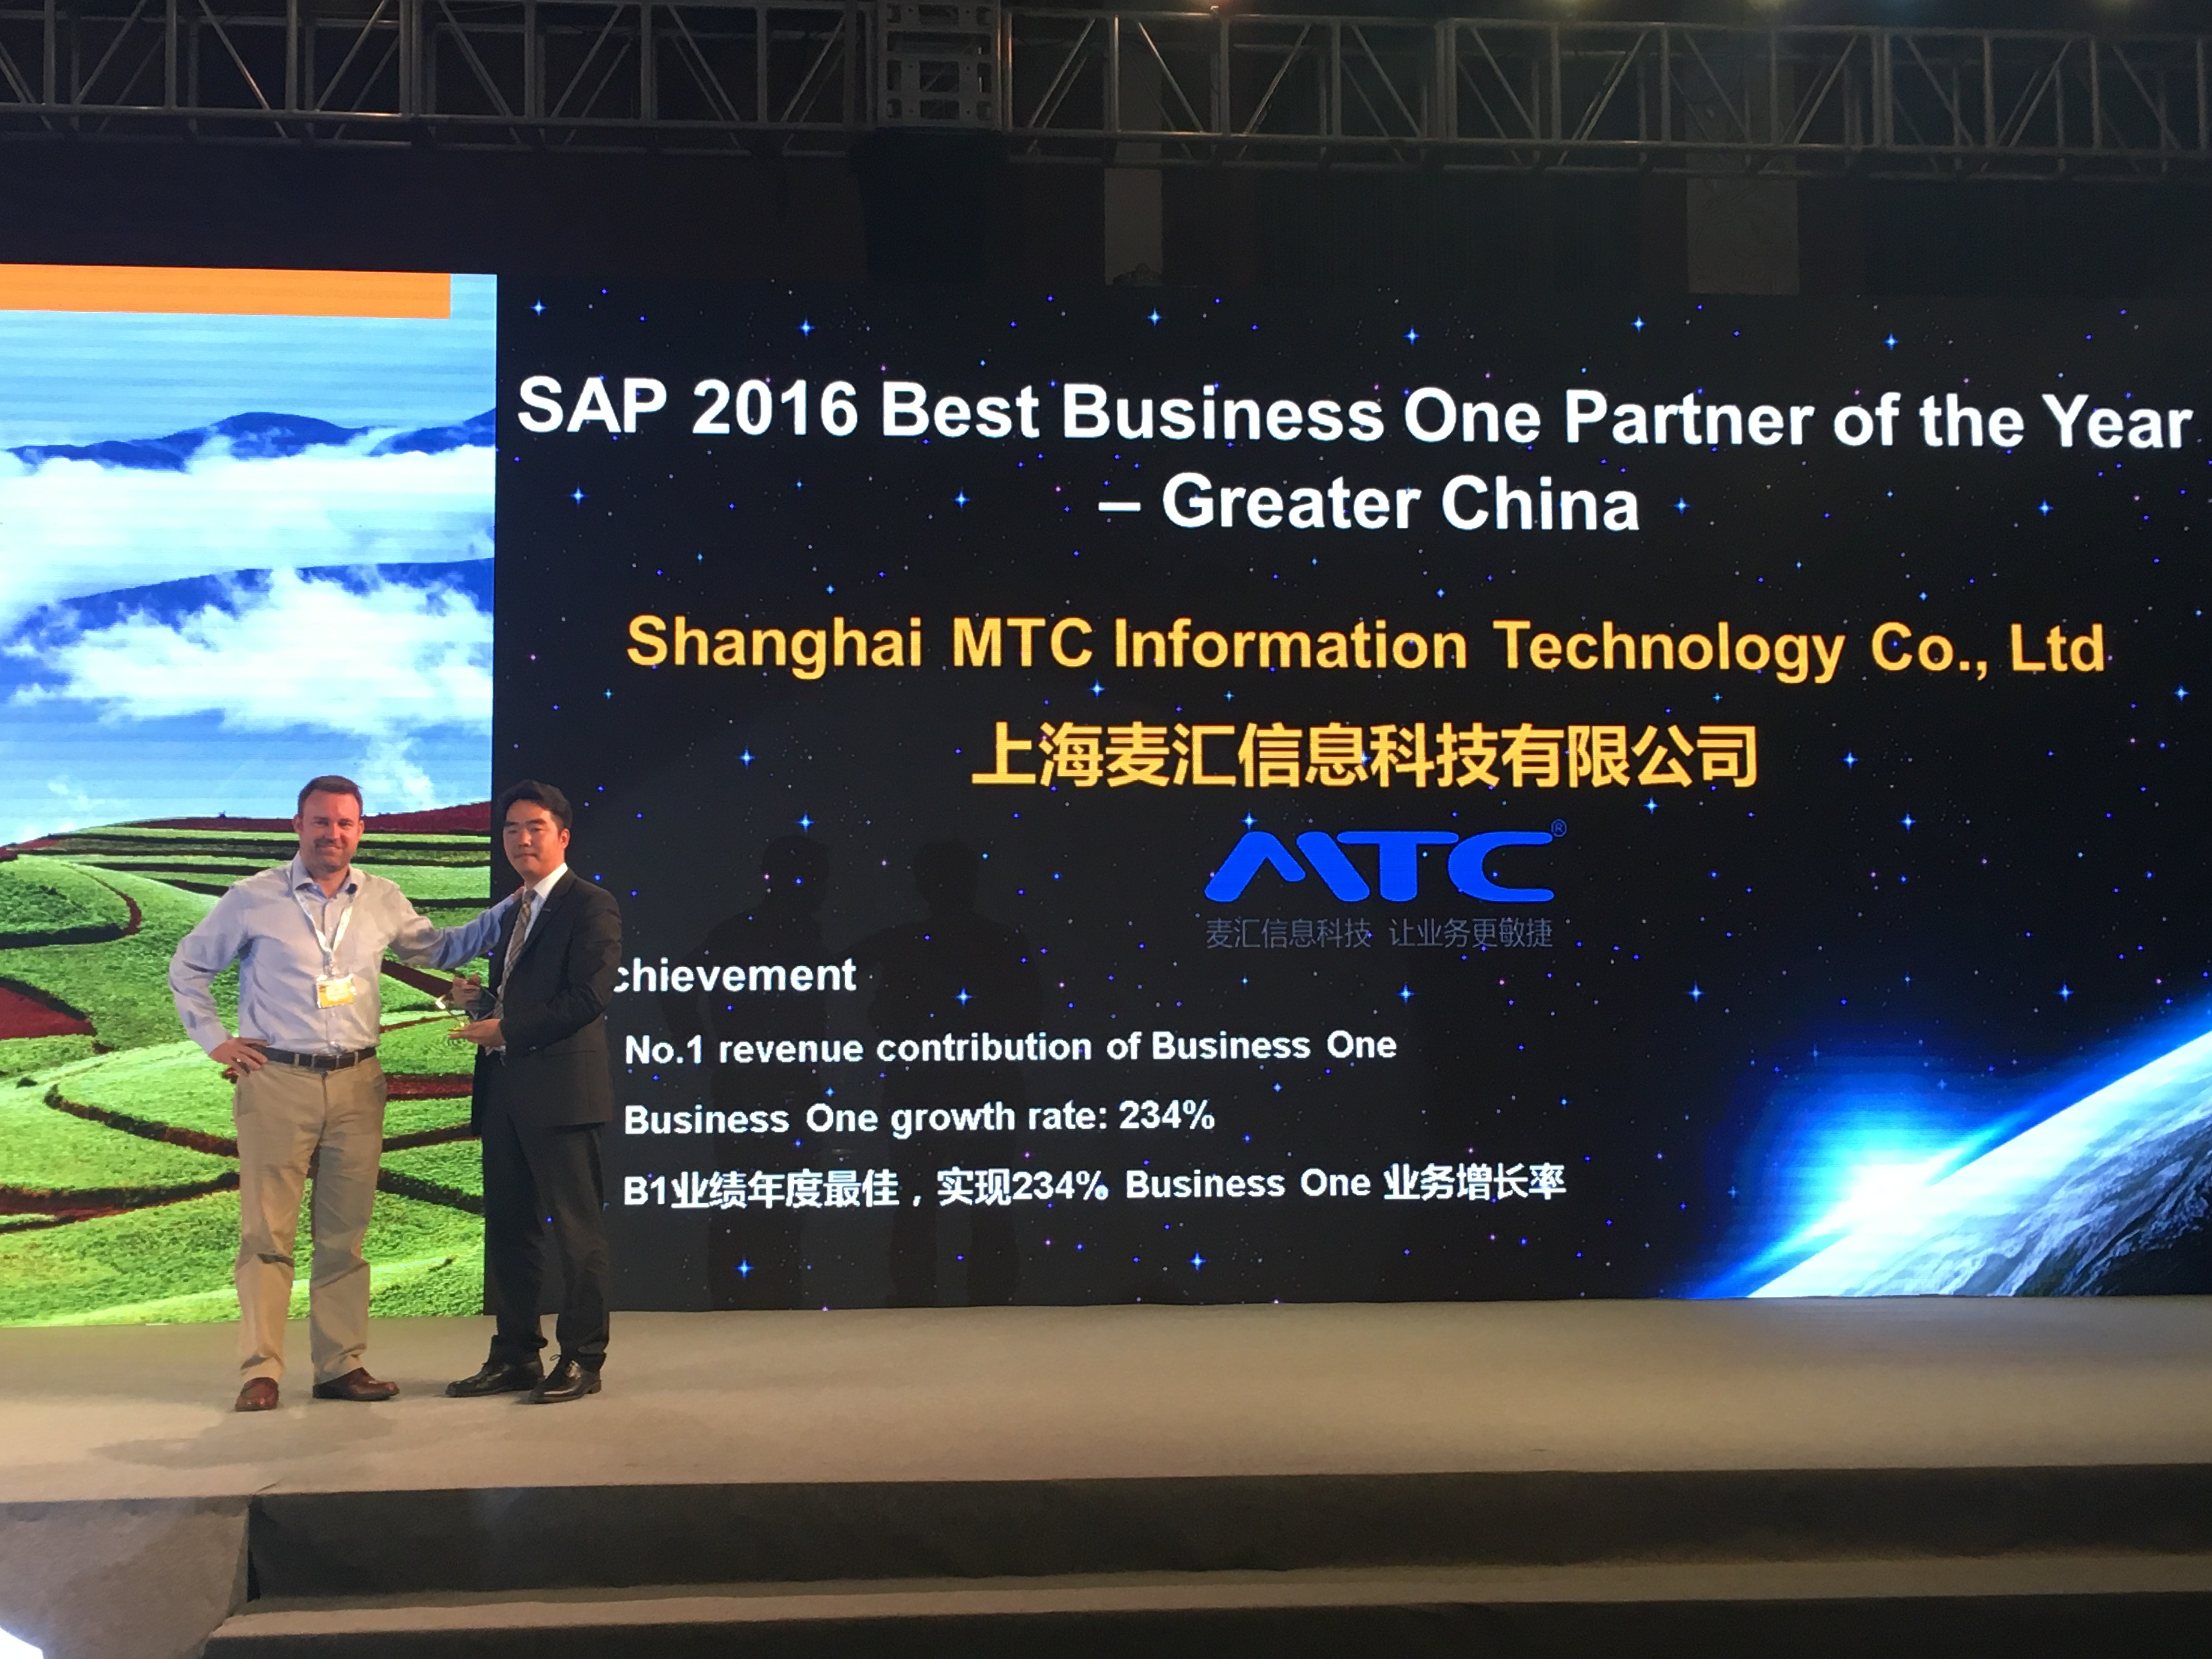 MTC - SAP 2016 Best Business One Partner of the Year